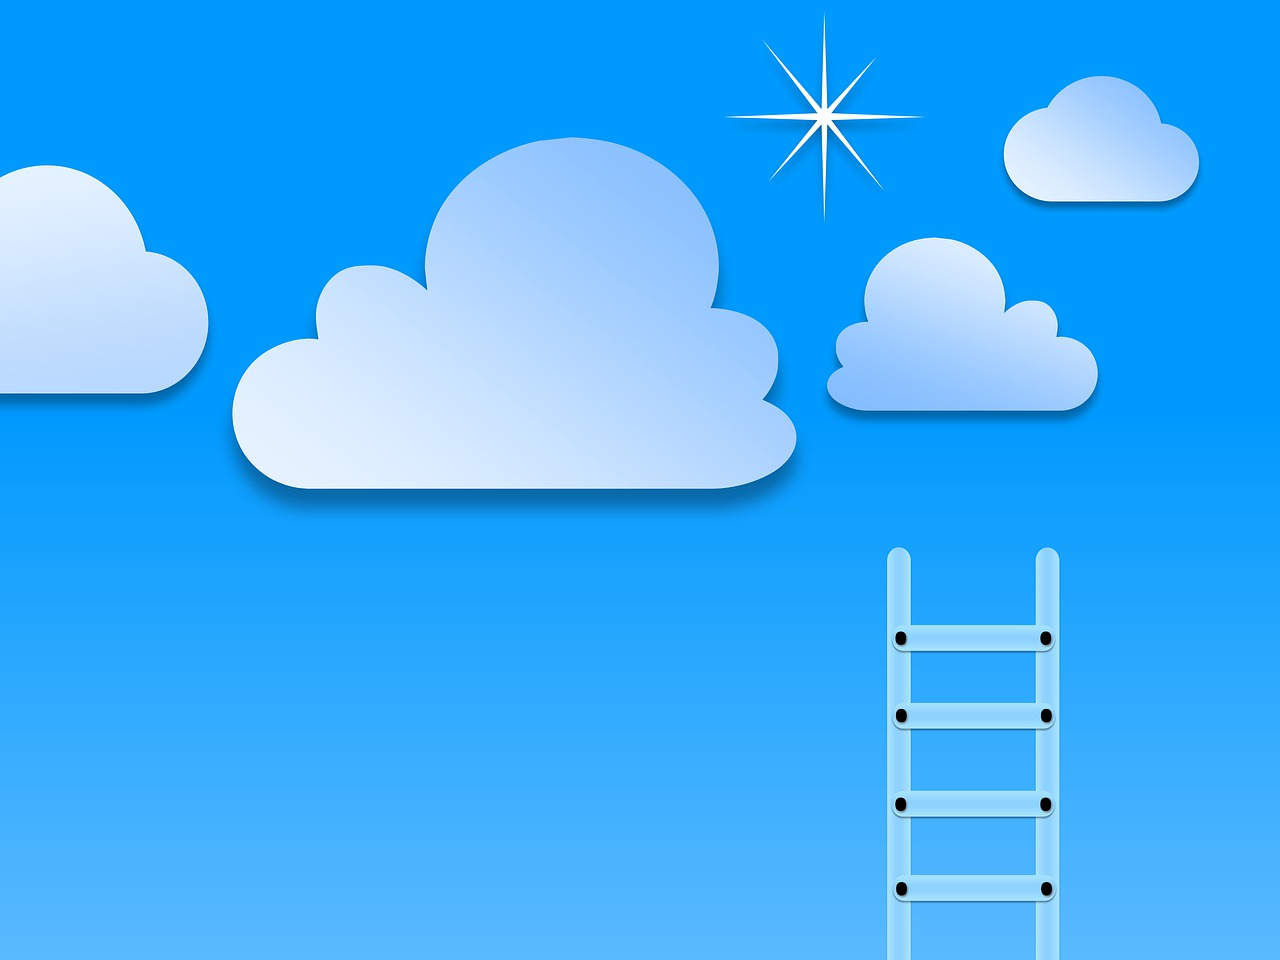 success images  stairs to cloud  stairs free photo